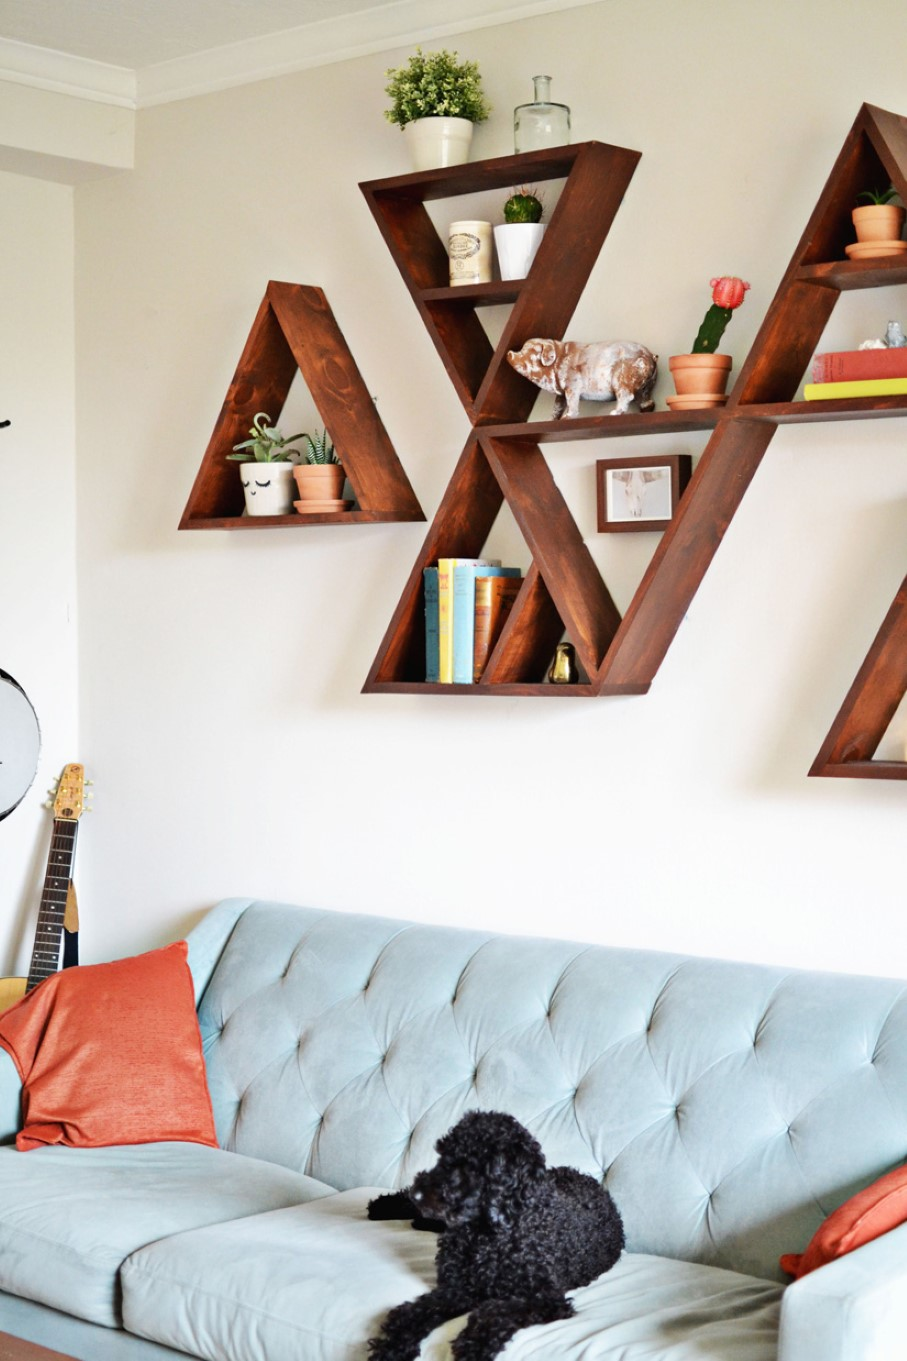 Artistic Wooden Diy Wall Shelves Idea In Letter Shape Above Soft Blue  Tufted Sofa With Sectional